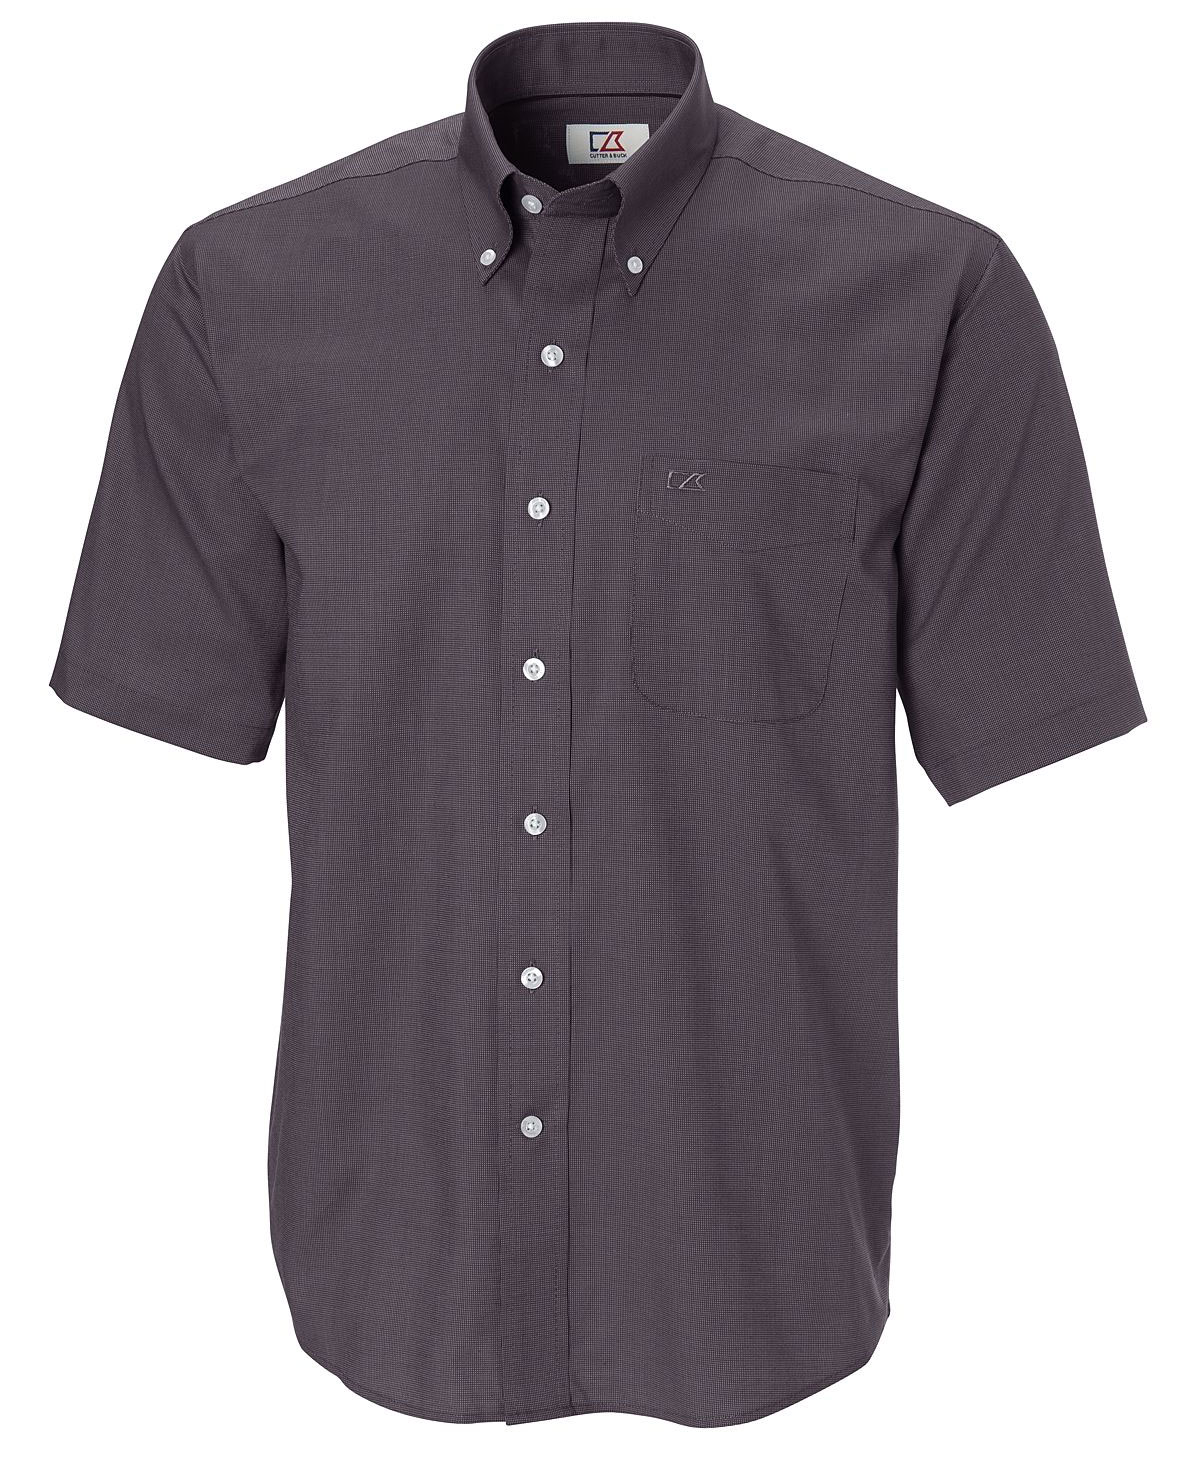 Mens Epic Easy Care Short Sleeve Nailshead Shirt by Cutter & Buck